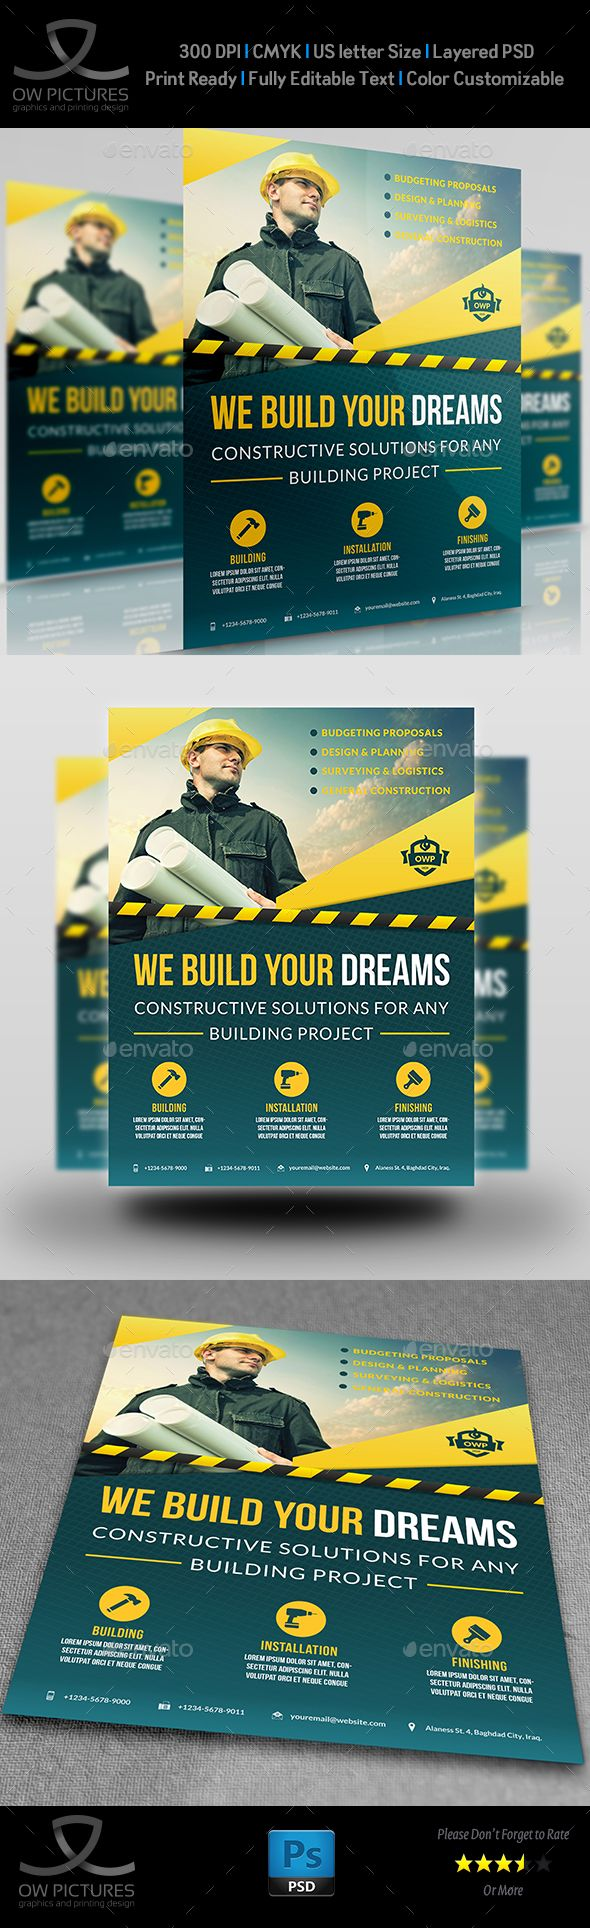 ideas about flyer template flyer design construction business flyer template psd here graphicriver net